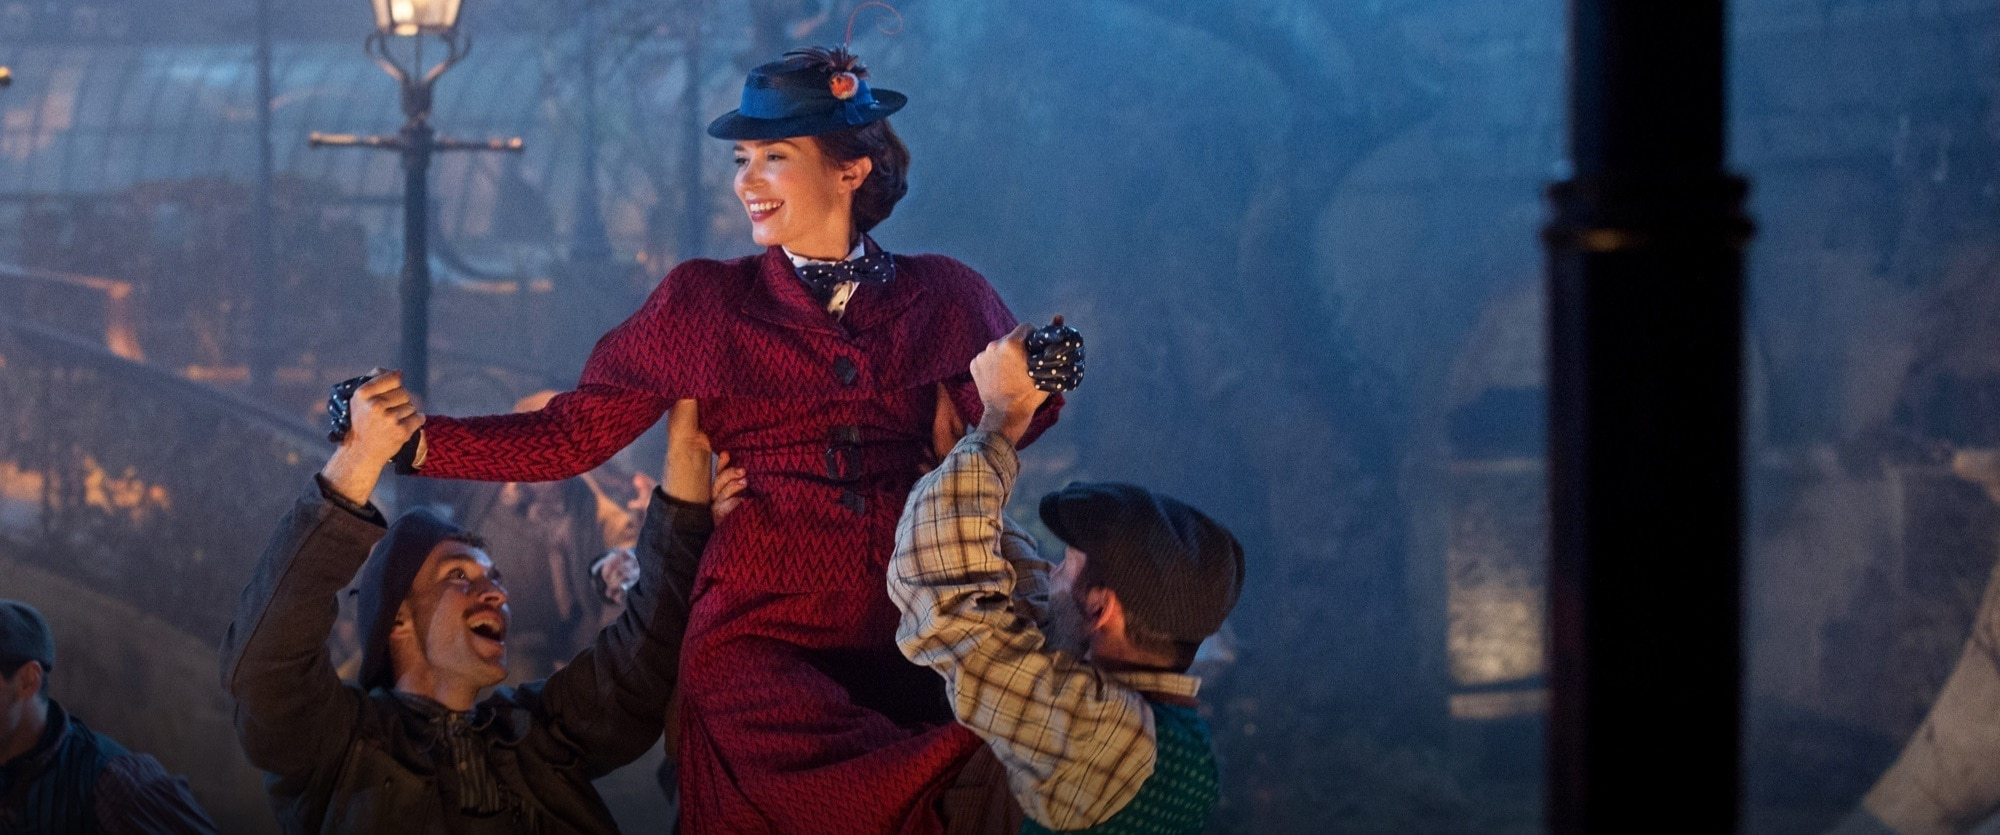 La magia detrás de El regreso de Mary Poppins | Article